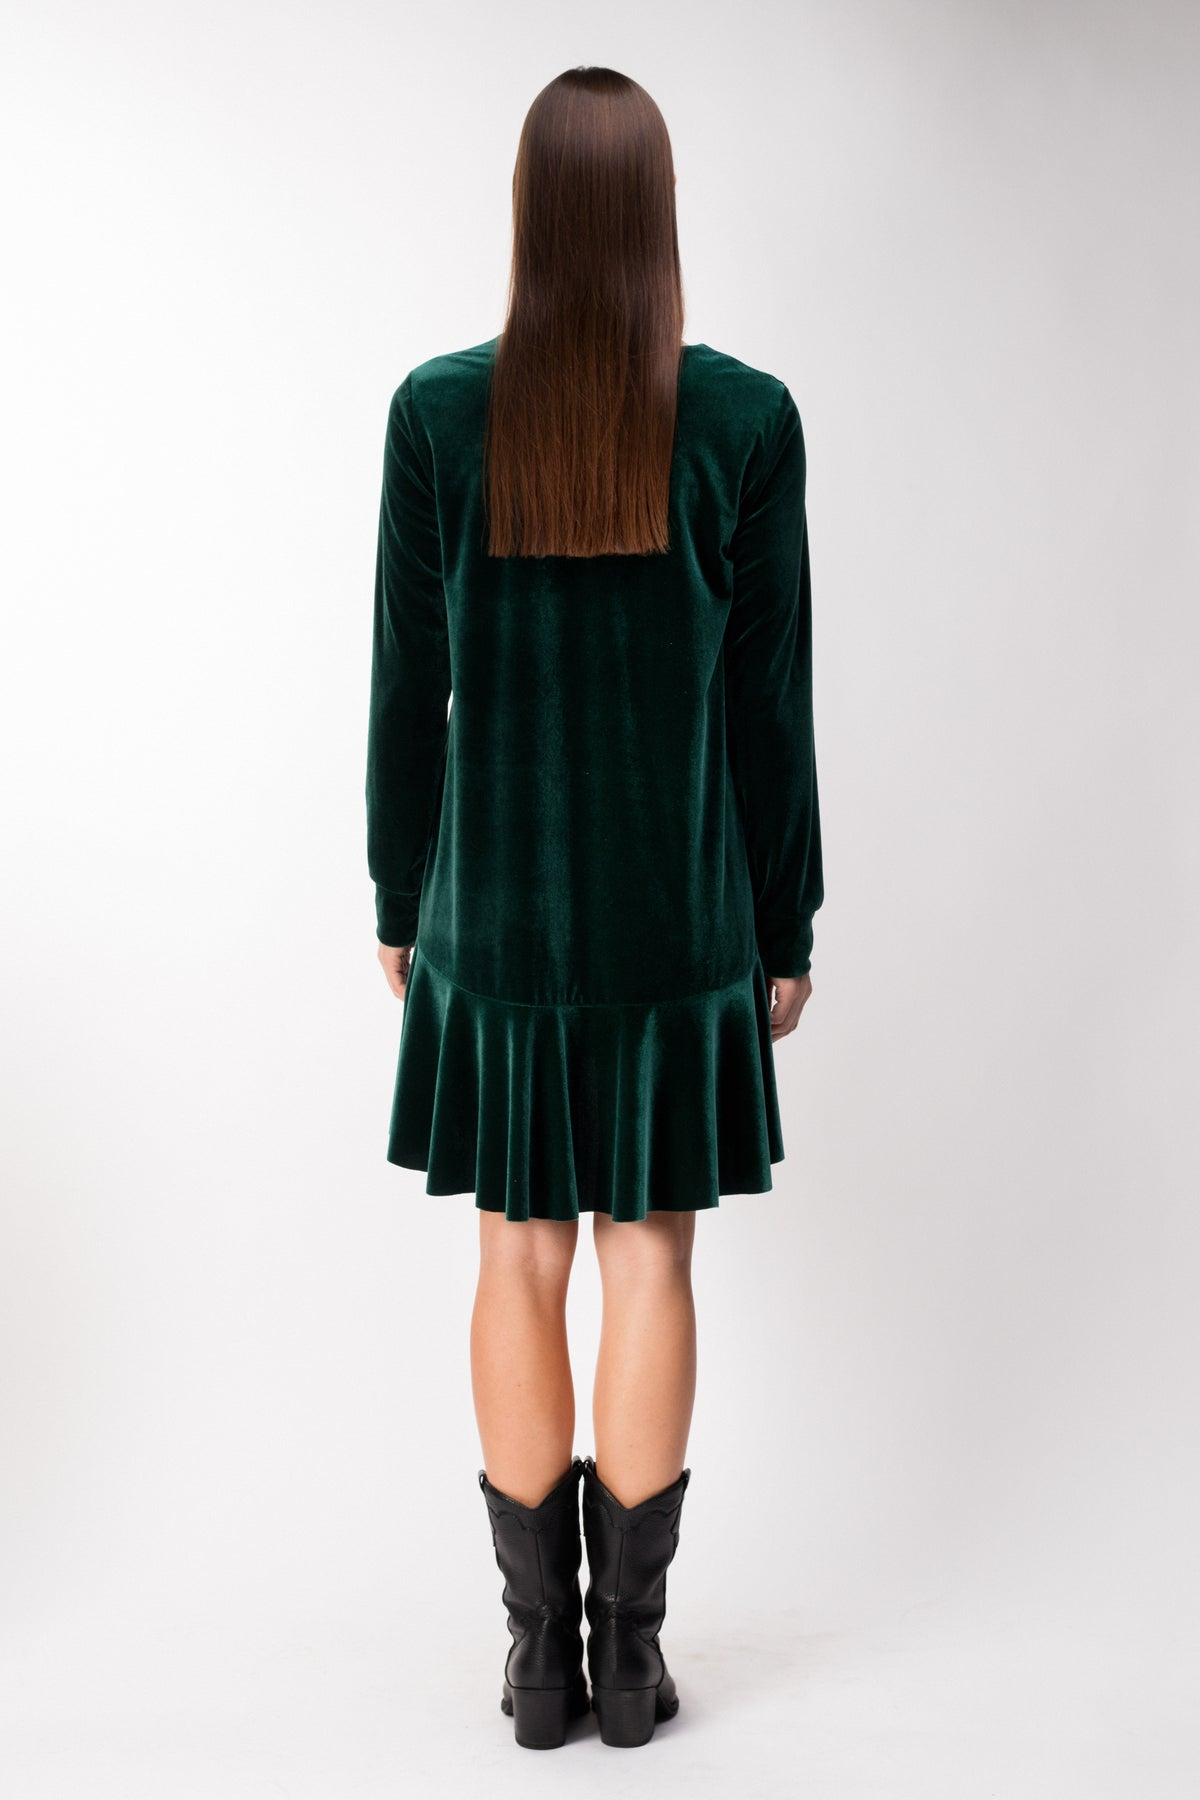 YEAR-ROUND-little-emerald-velvet-dress-le-slap-clothing-v-neck-details.jpg